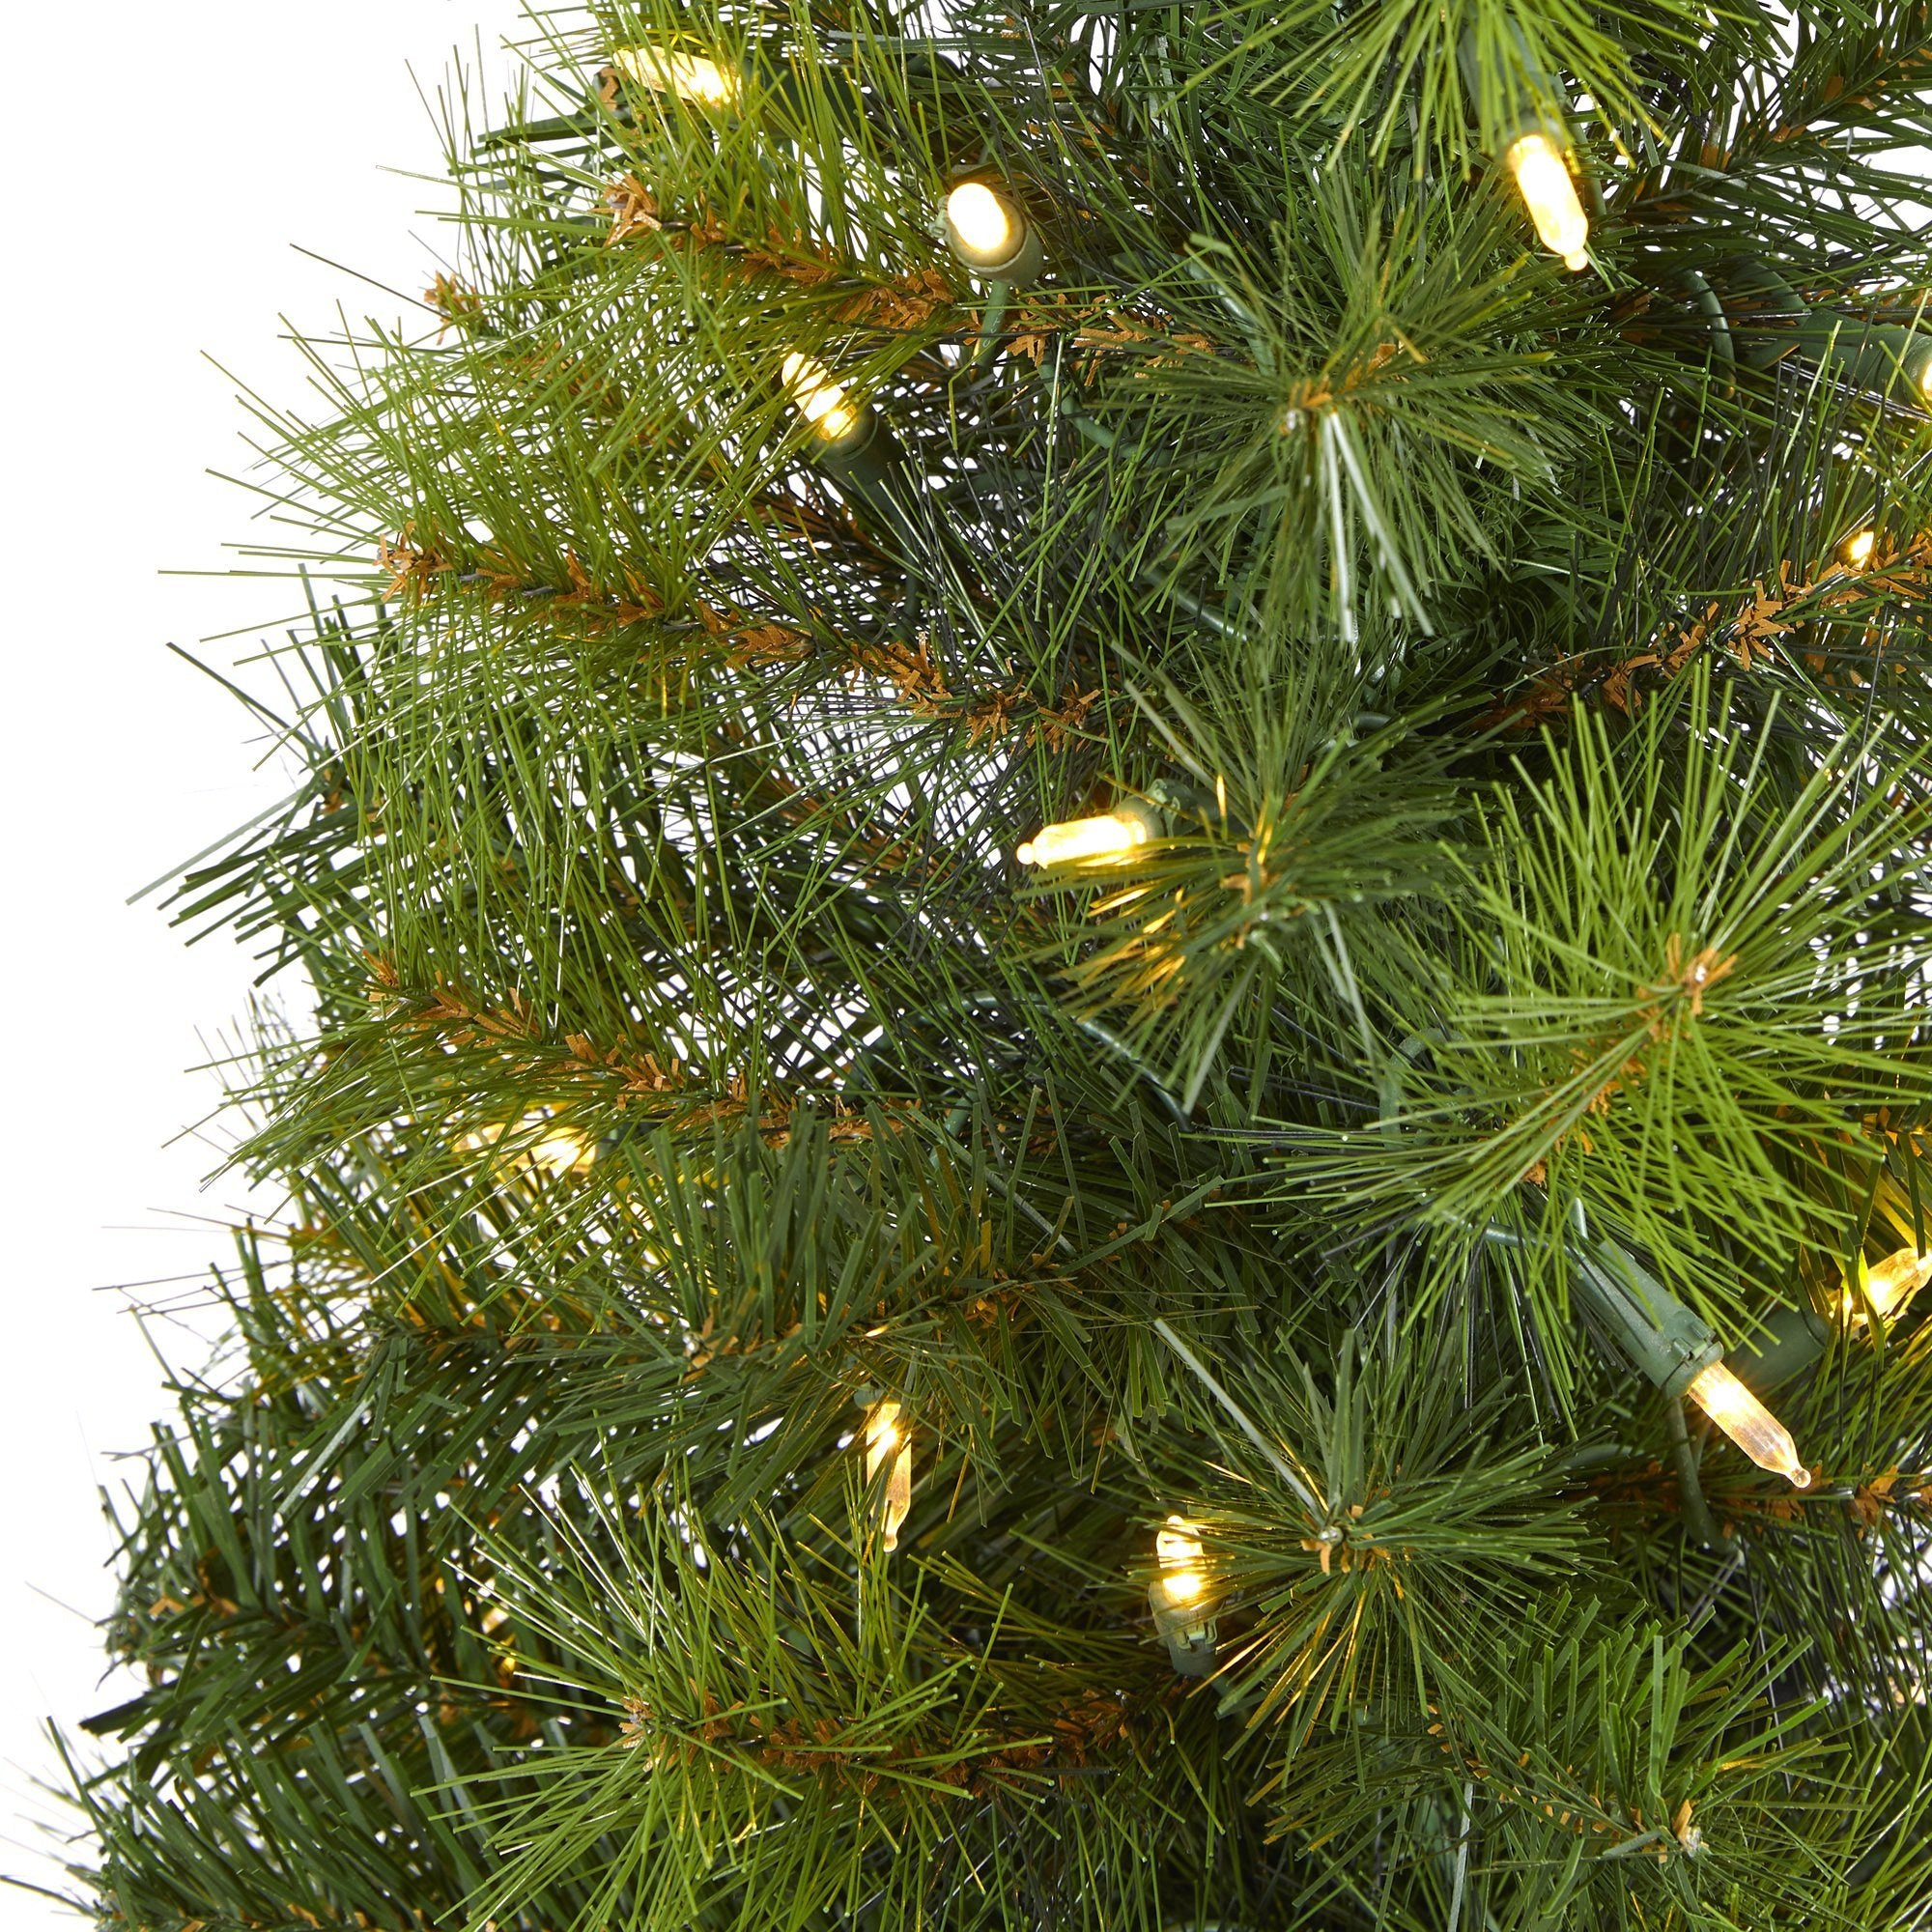 4 Green Valley Pine Artificial Christmas Tree With 100 Warm White Led Lights And 201 Bendable Branches Nearly Natural